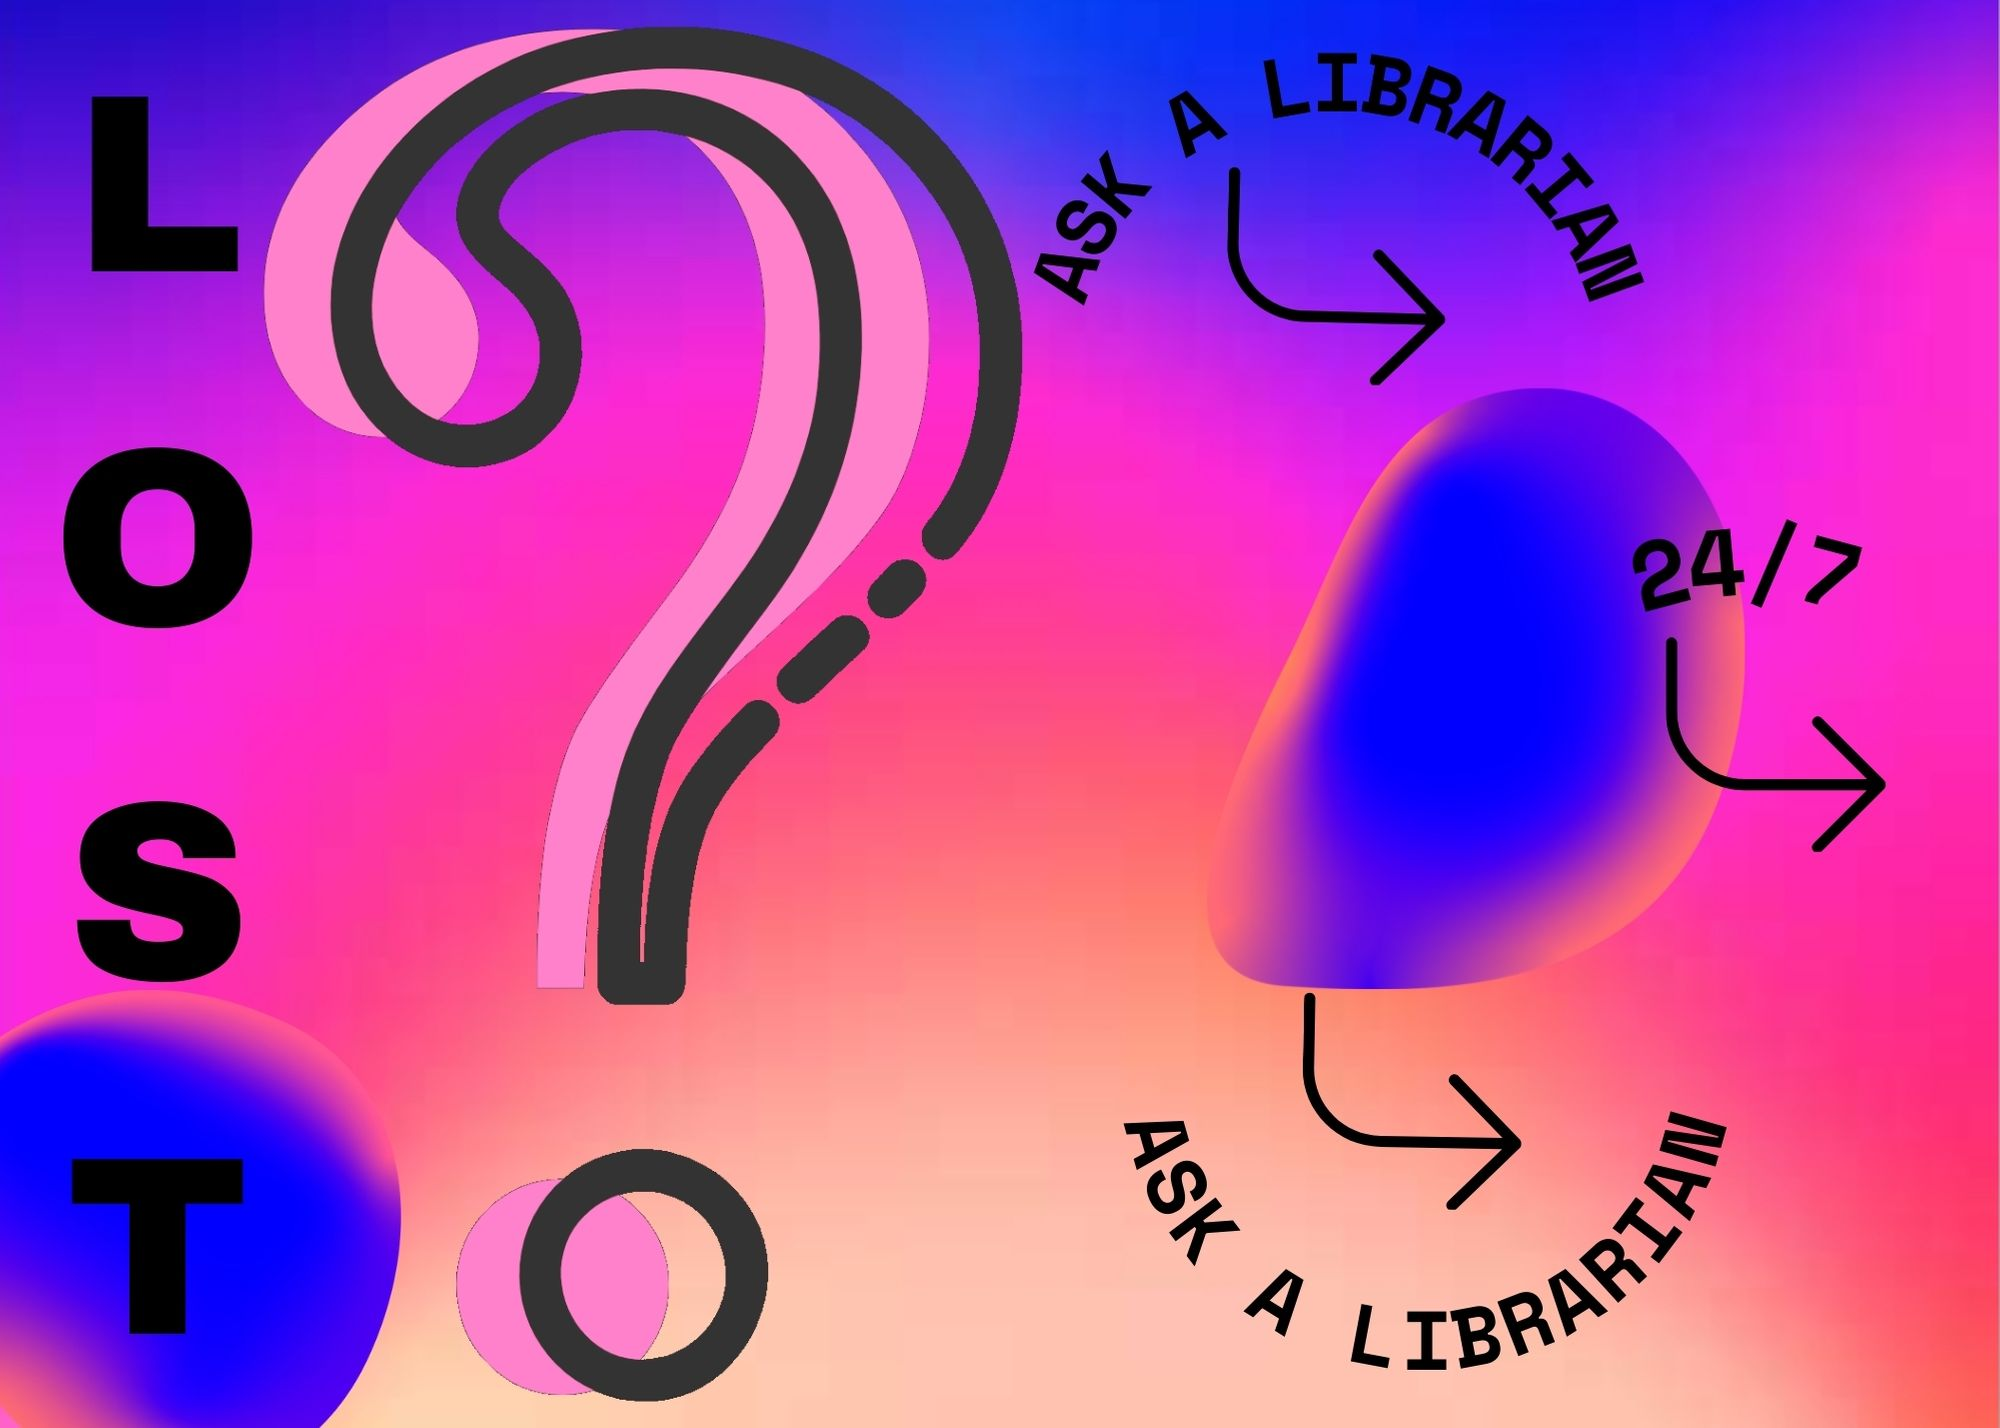 Lost? Use Ask A Librarian